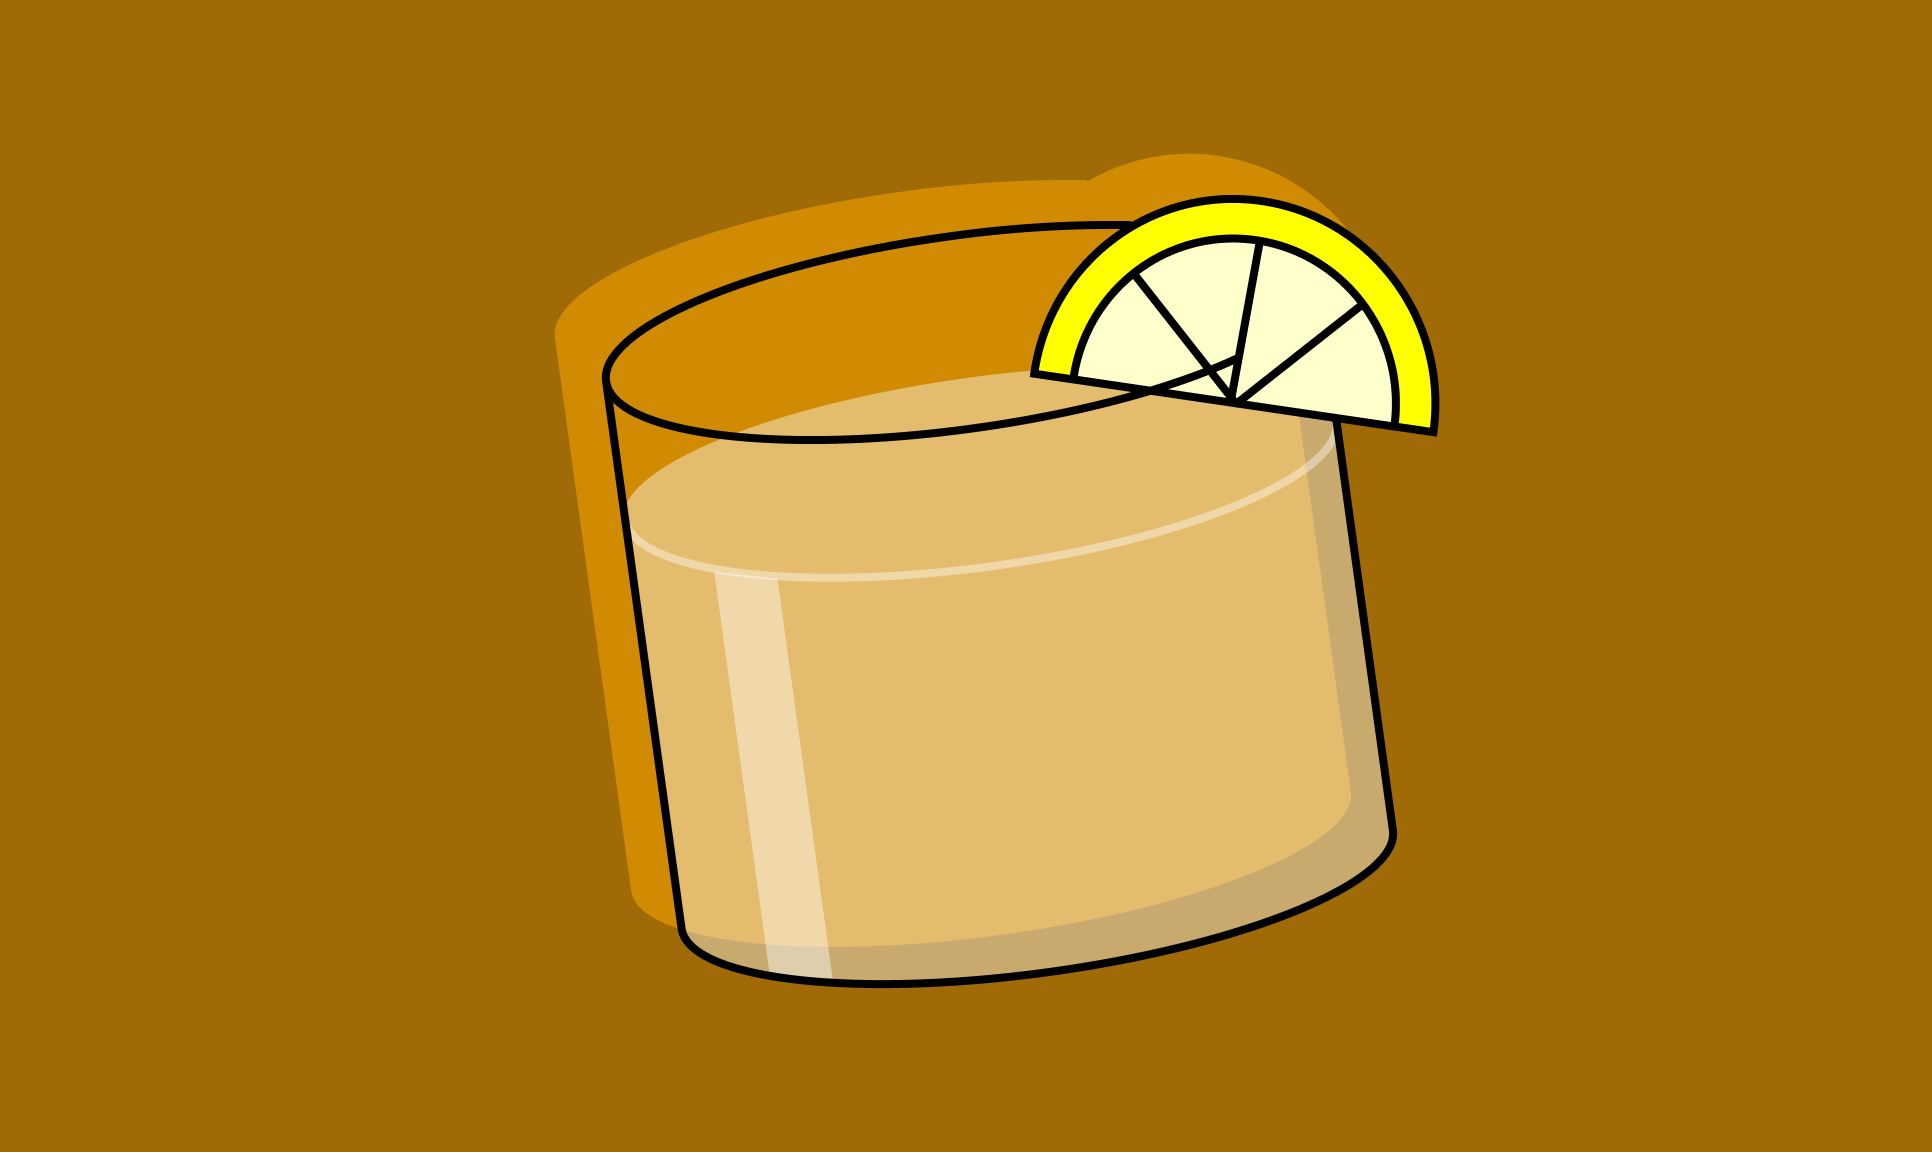 Illustration of a cocktail glass with a lemon wedge.